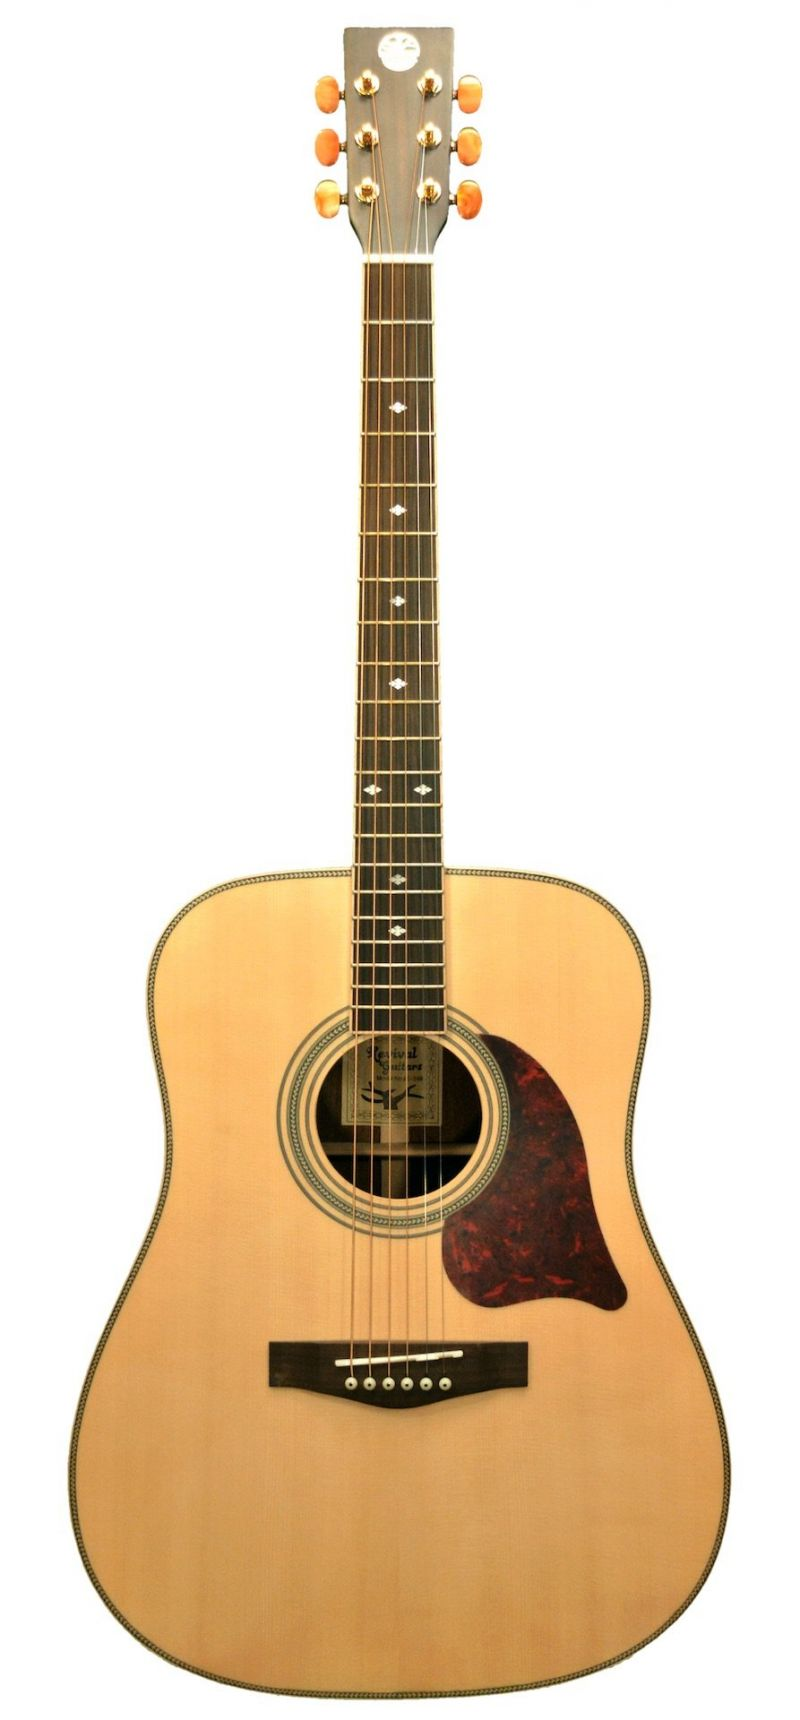 Revival Matte Solid Spruce Rosewood Dreadnought Guitar